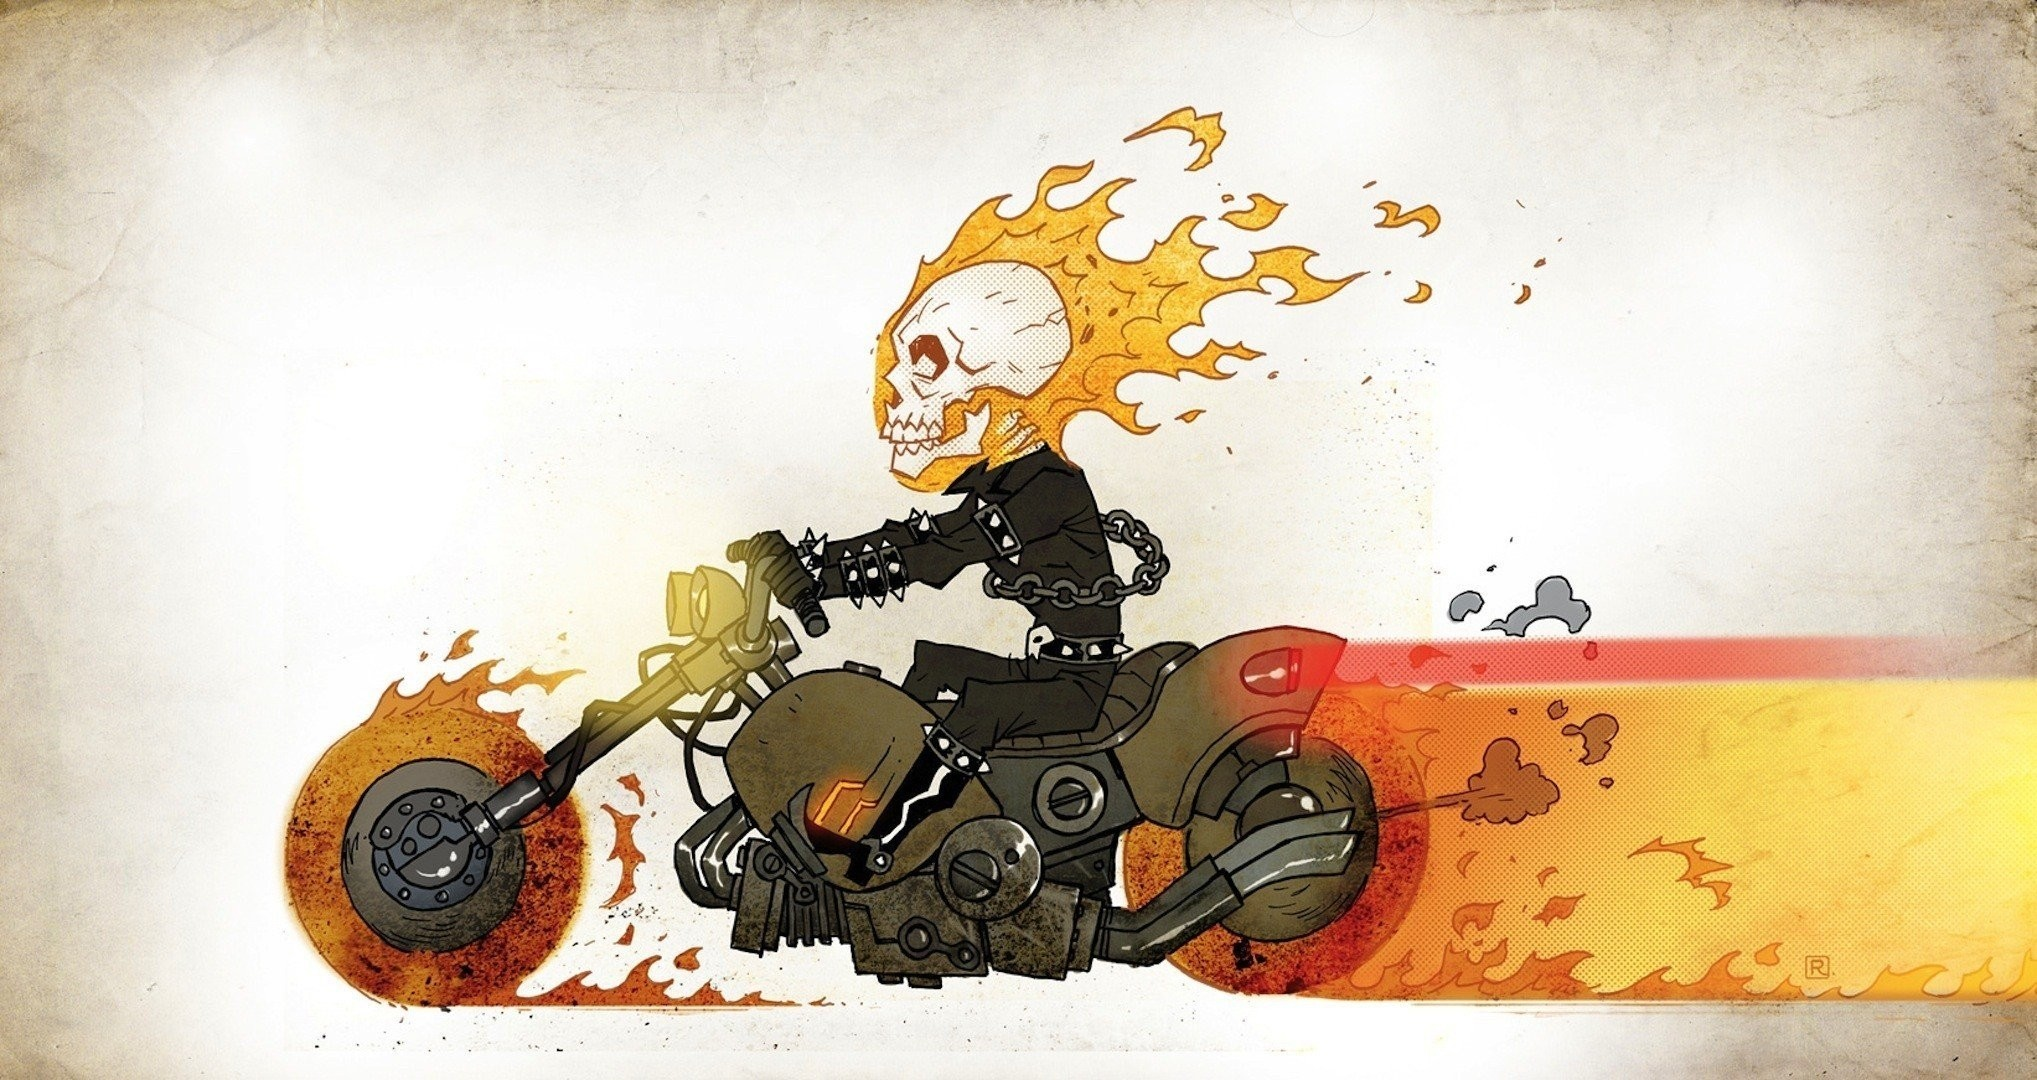 chains skull overall comics ghost rider picture fire bike